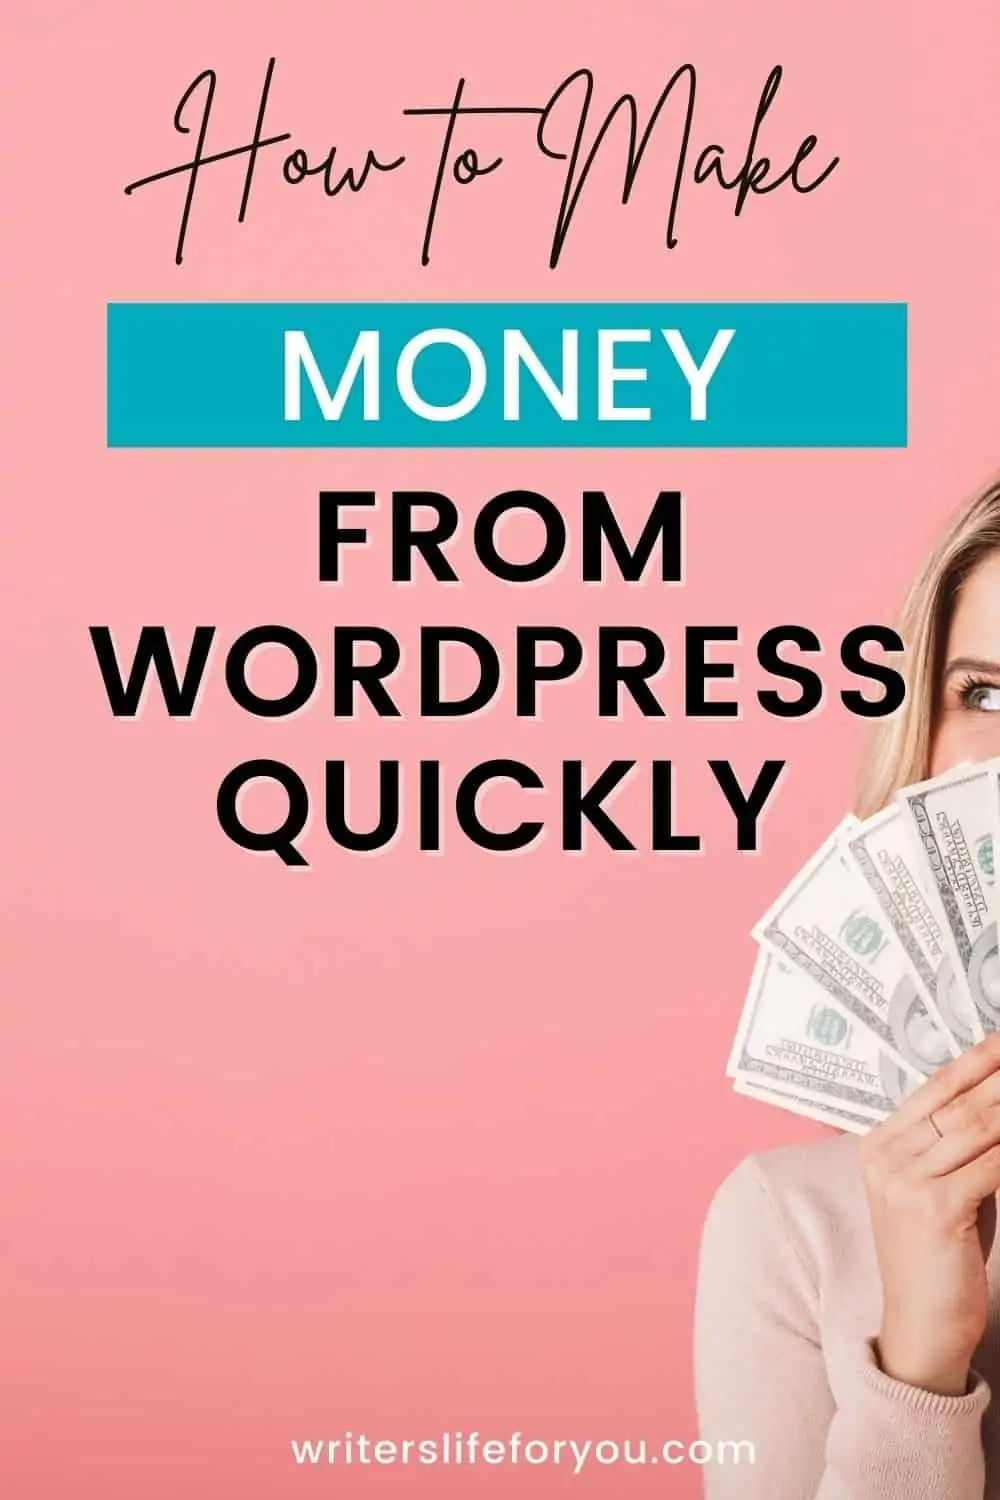 How to Make Money With WordPress in 48 Hours: 5 Clever Ways